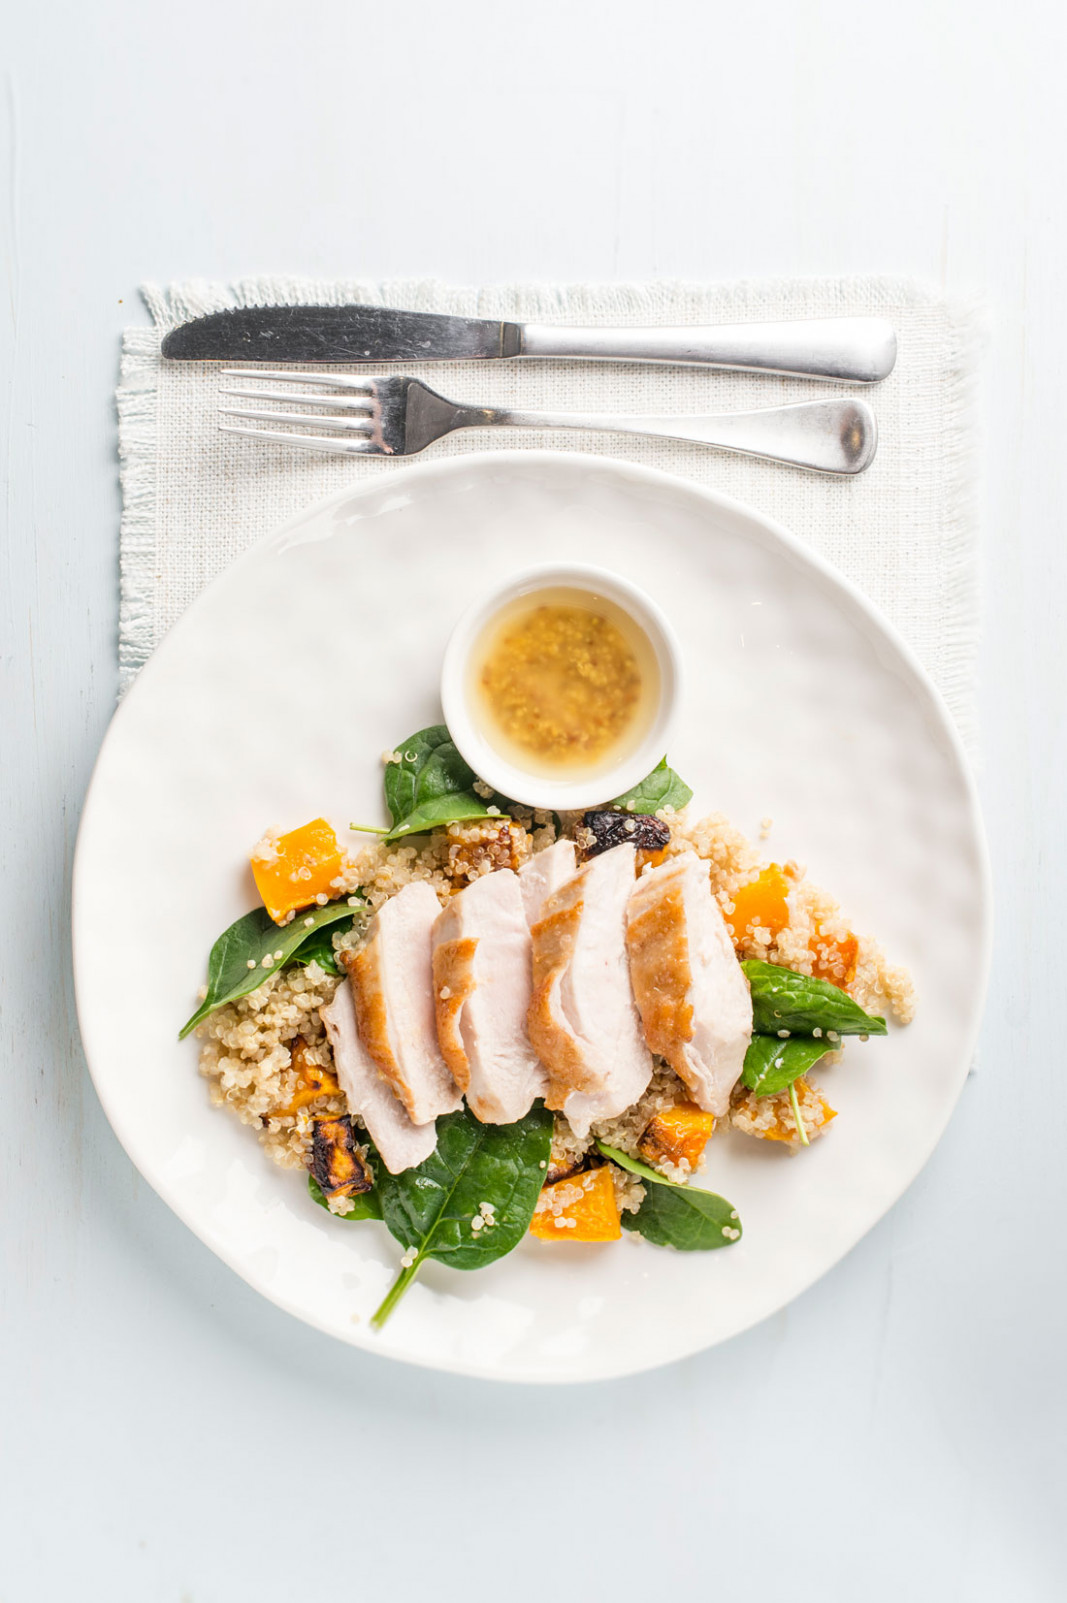 Juicy chicken breast with roast pumpkin, quinoa and spinach salad - food recipes with chicken breast